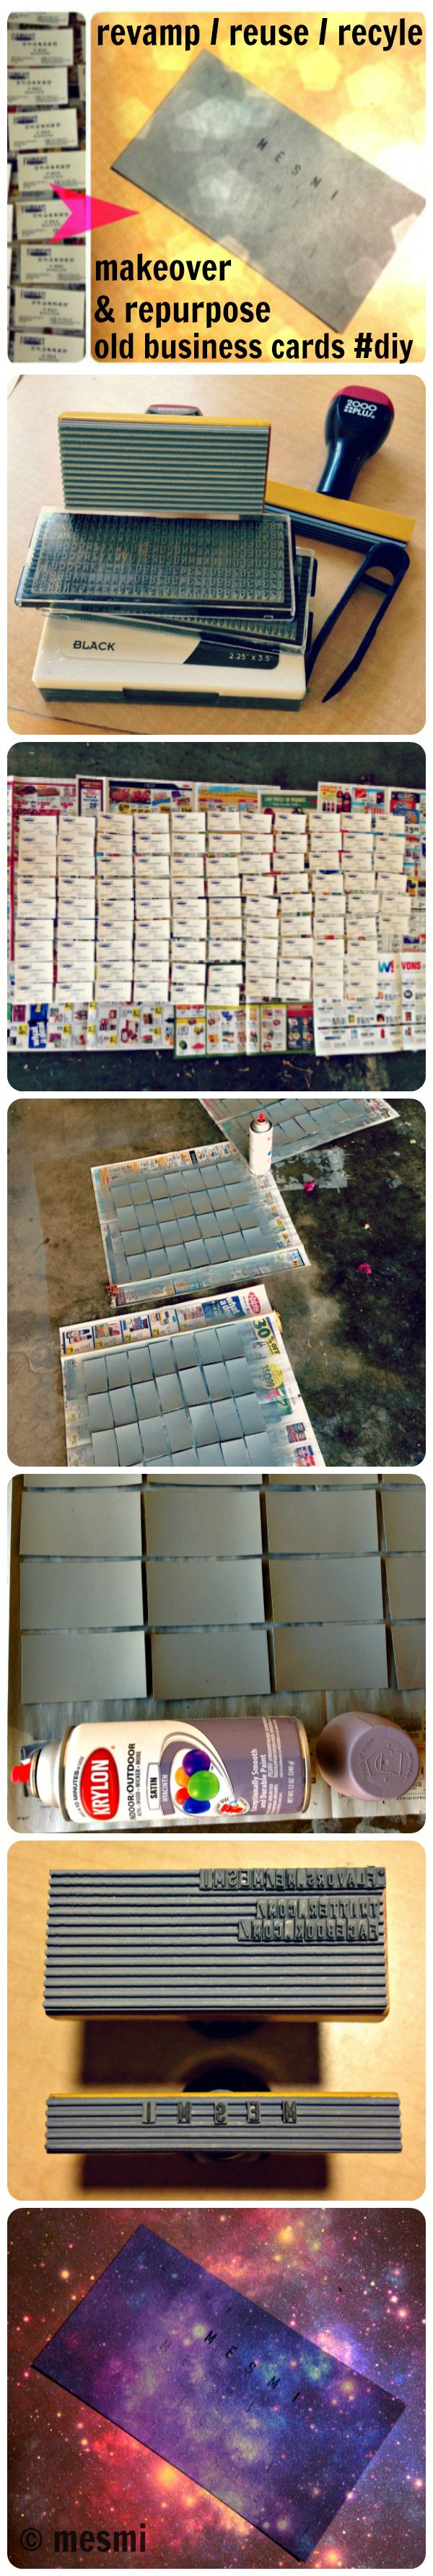 spray paint stamp kit reuse revamp recycle old business